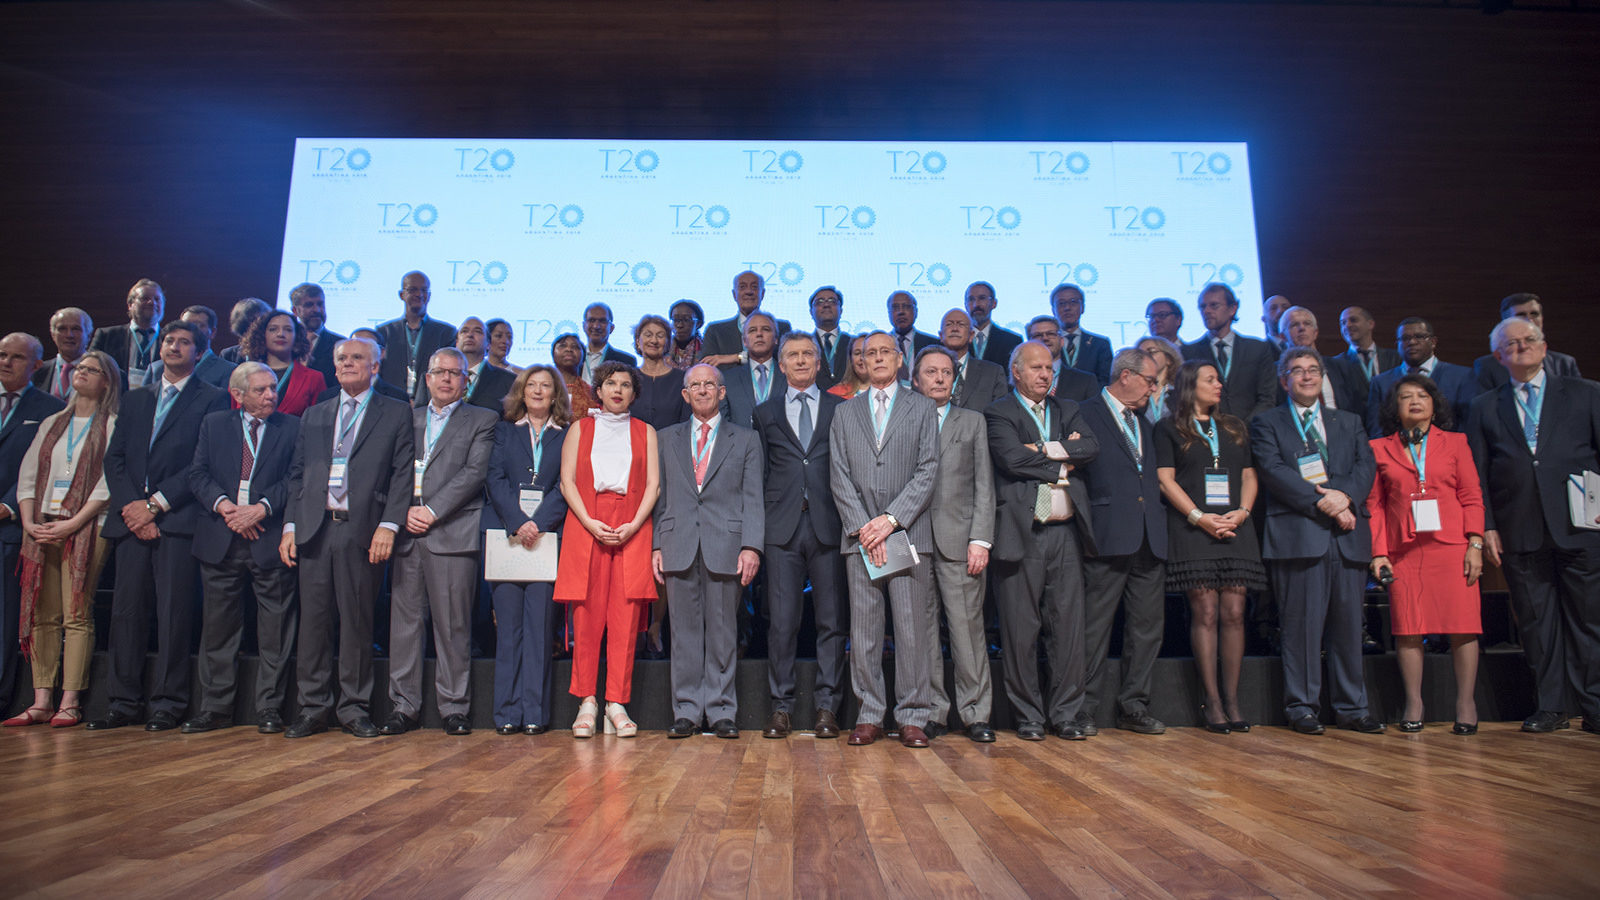 International Economic Cooperation in Troubled Times: A Call for Strong Action by the G20